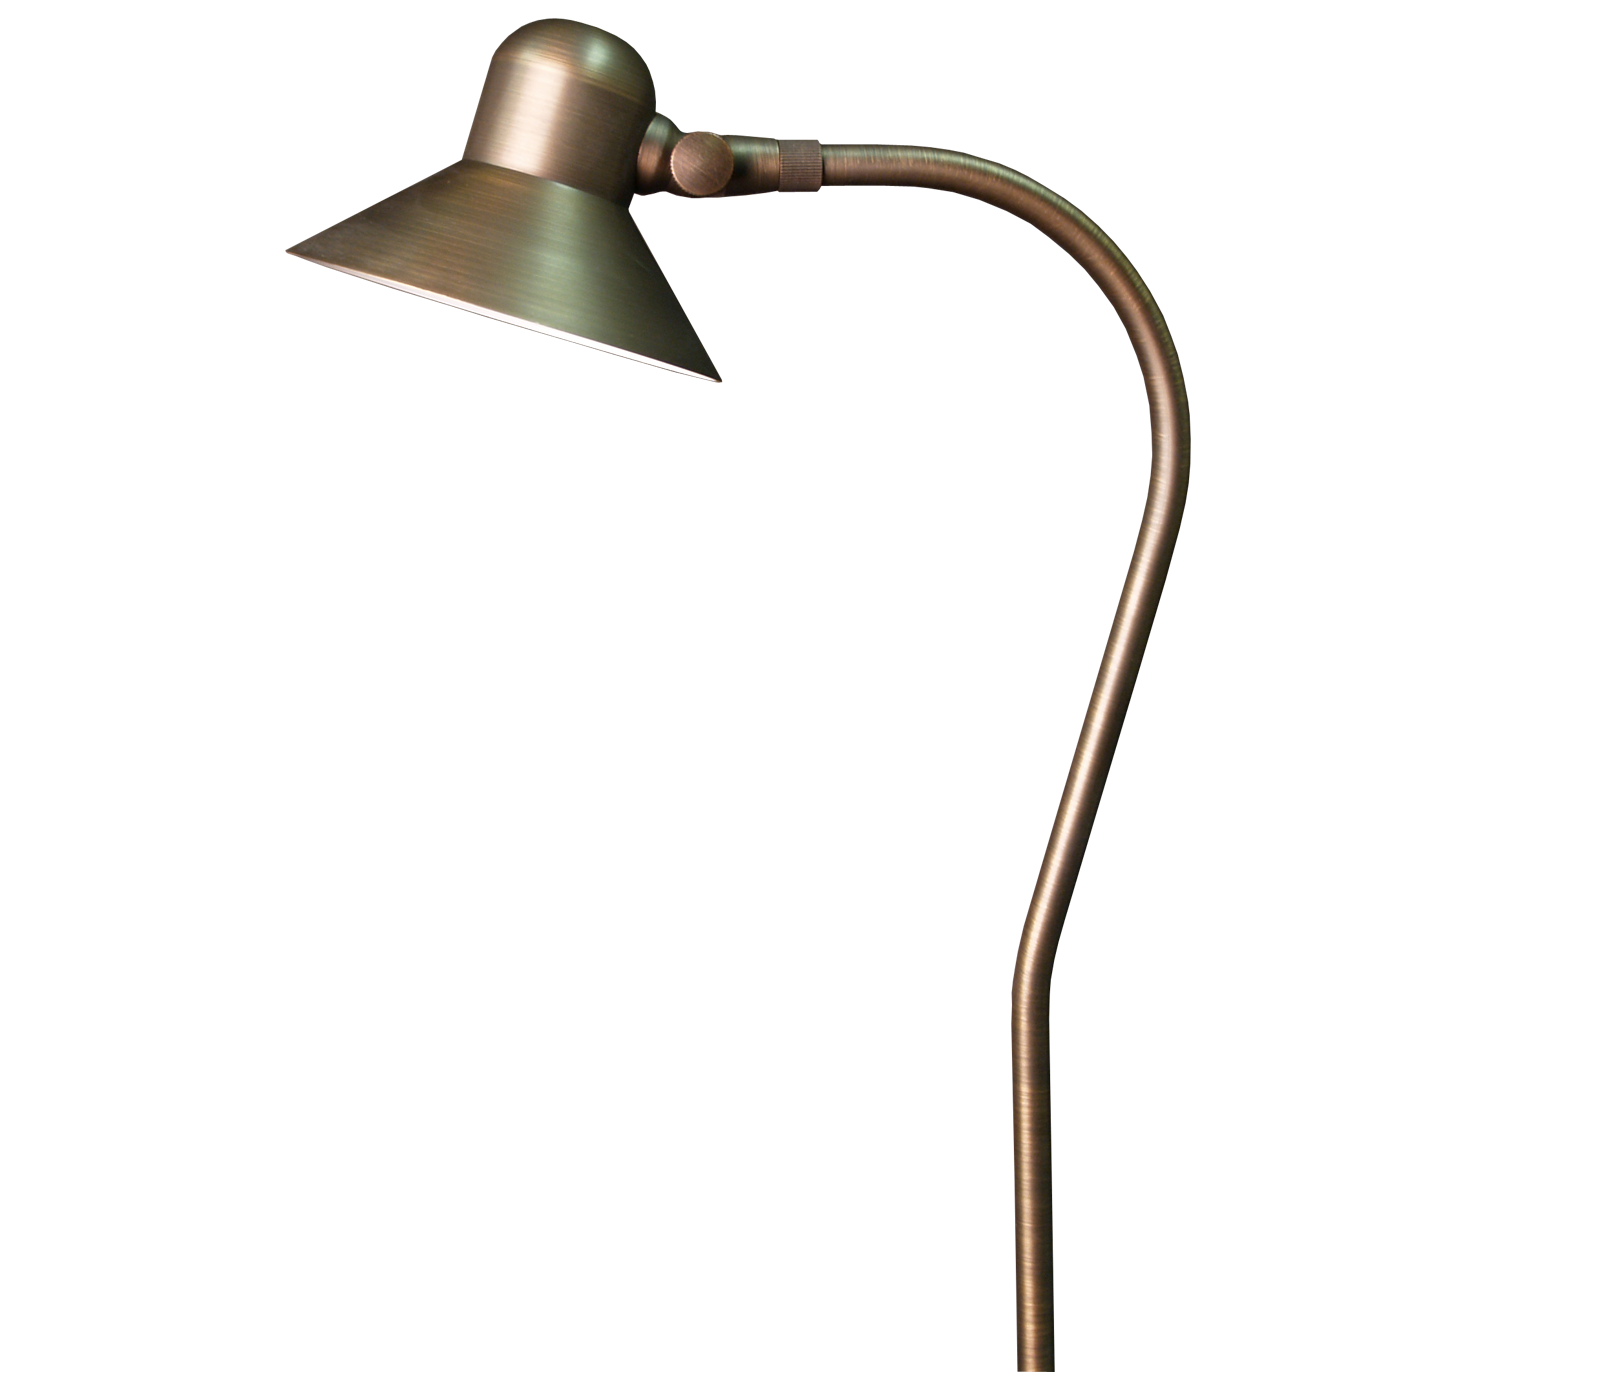 Unique Lighting Designs Unusual Elegant And Stylish The Excalibur Features Fully Articulating Shroud Allowing Maximum Design Control The 545inch Bell Shape Shroud Tilts And Rotates Unique Lighting Systems Unique Lighting Excalibur